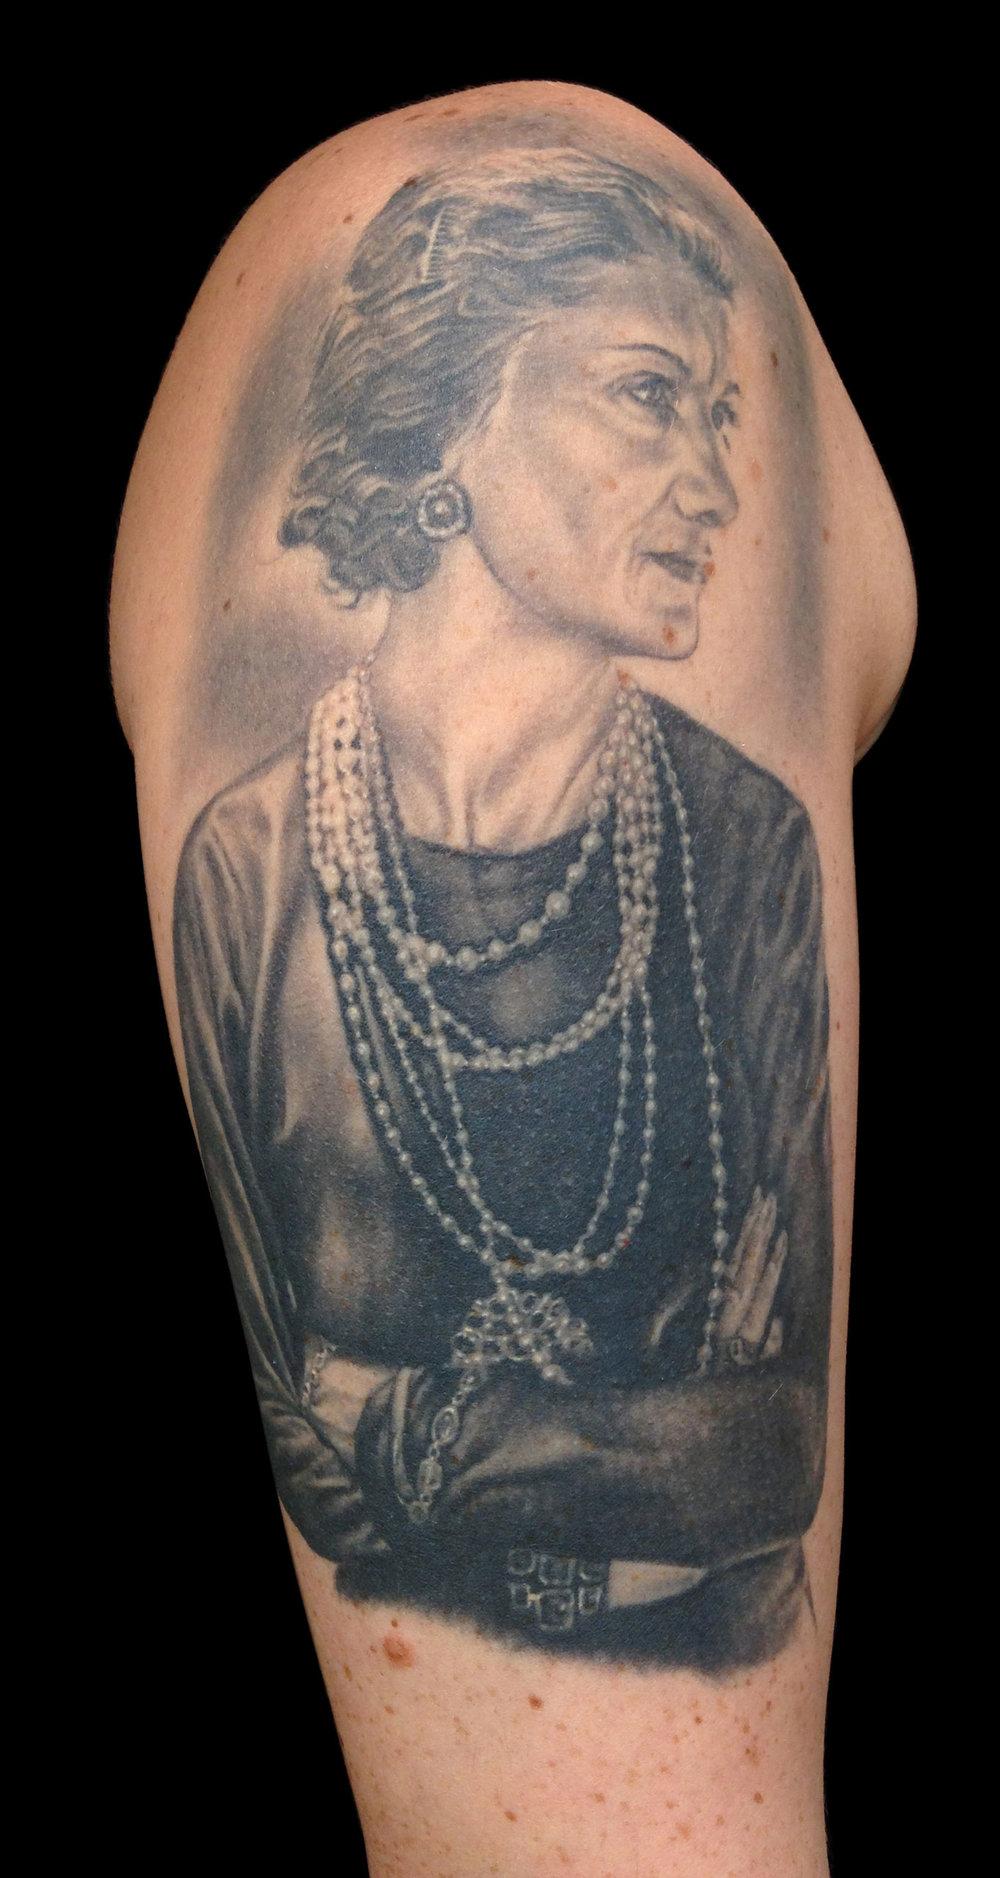 Black and Grey Coco Chanel Portrait Tattoo, (healed)